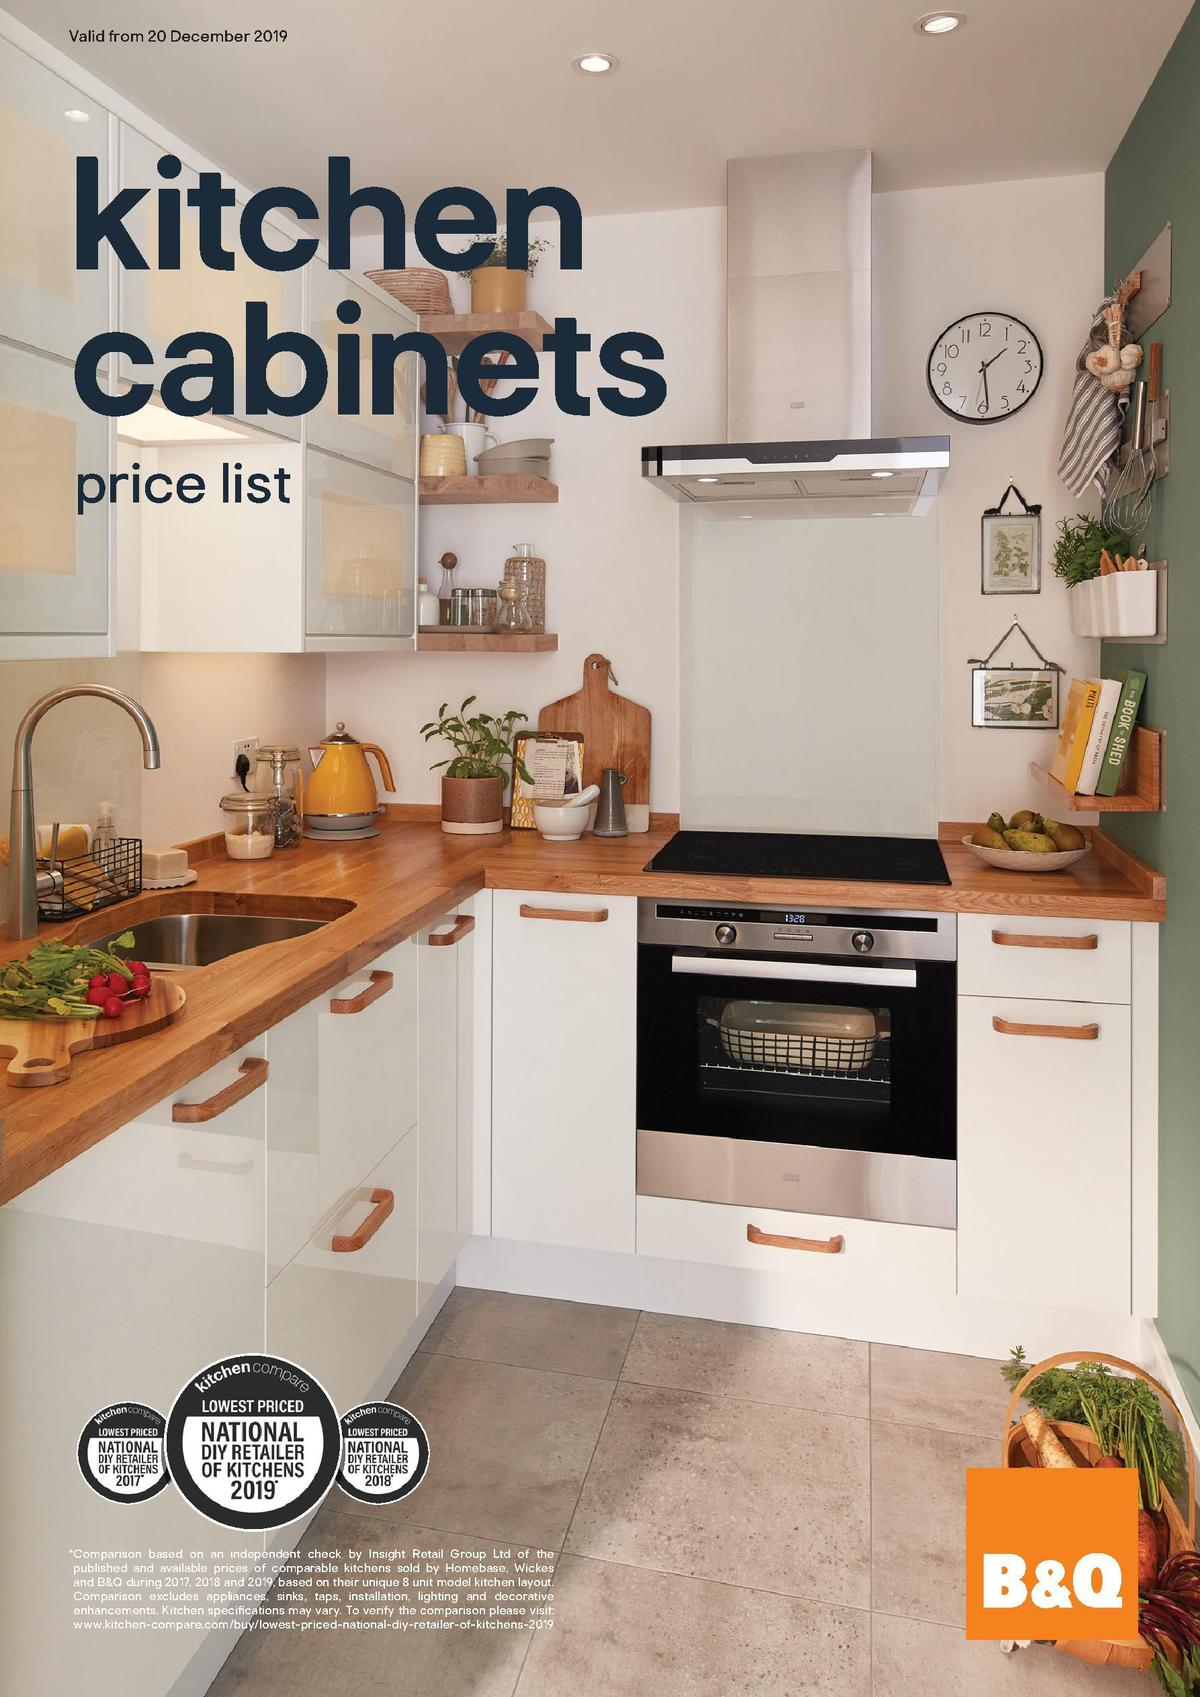 B&Q Kitchen Cabinets price list Offers & Special Buys for ...